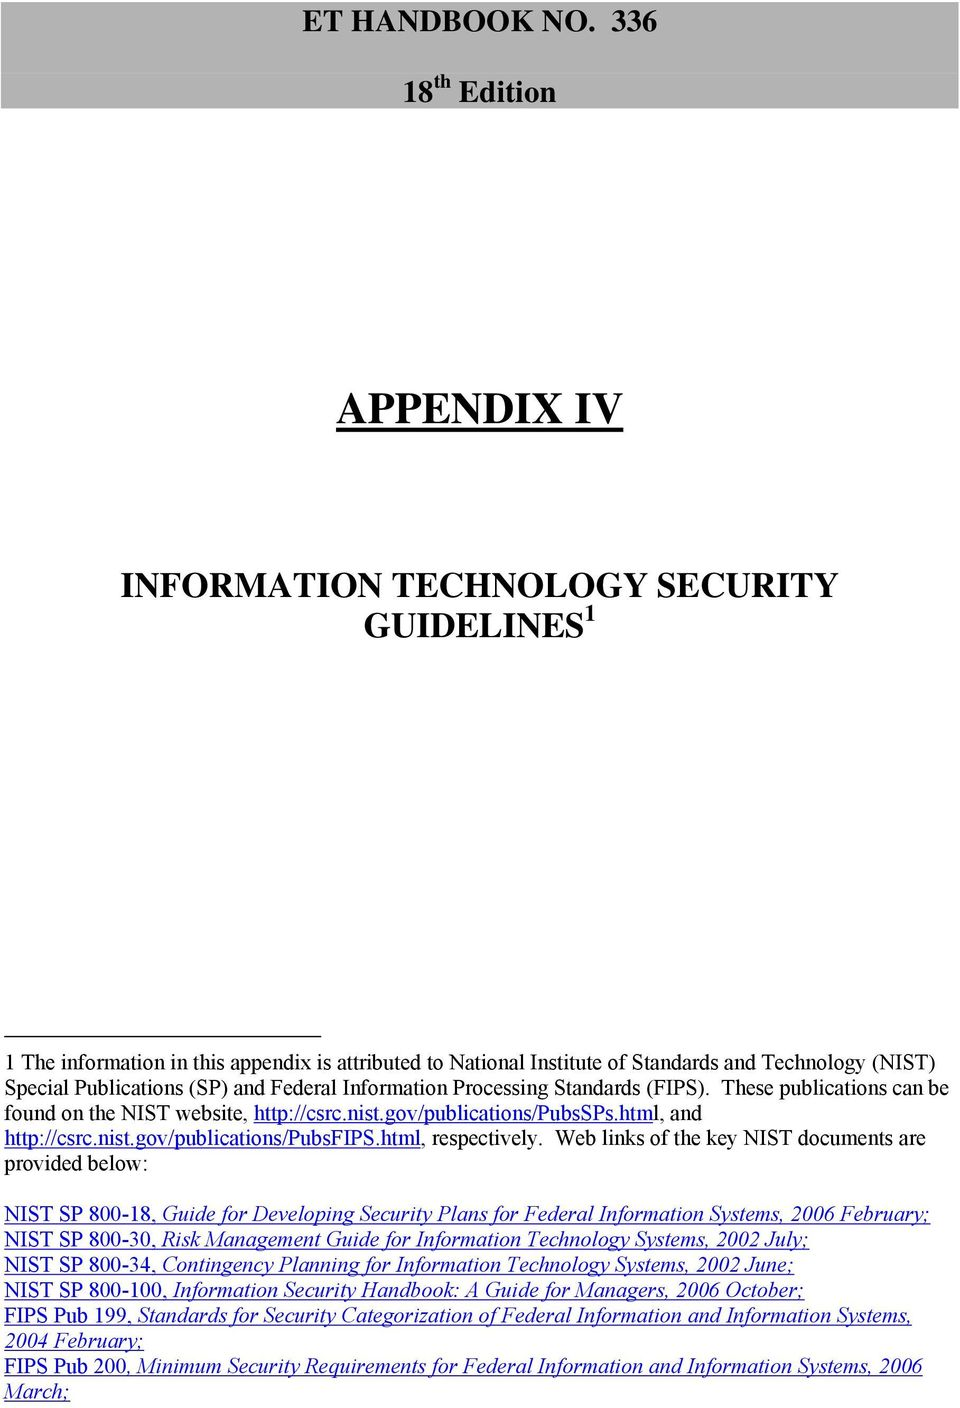 web application security handbook pdf